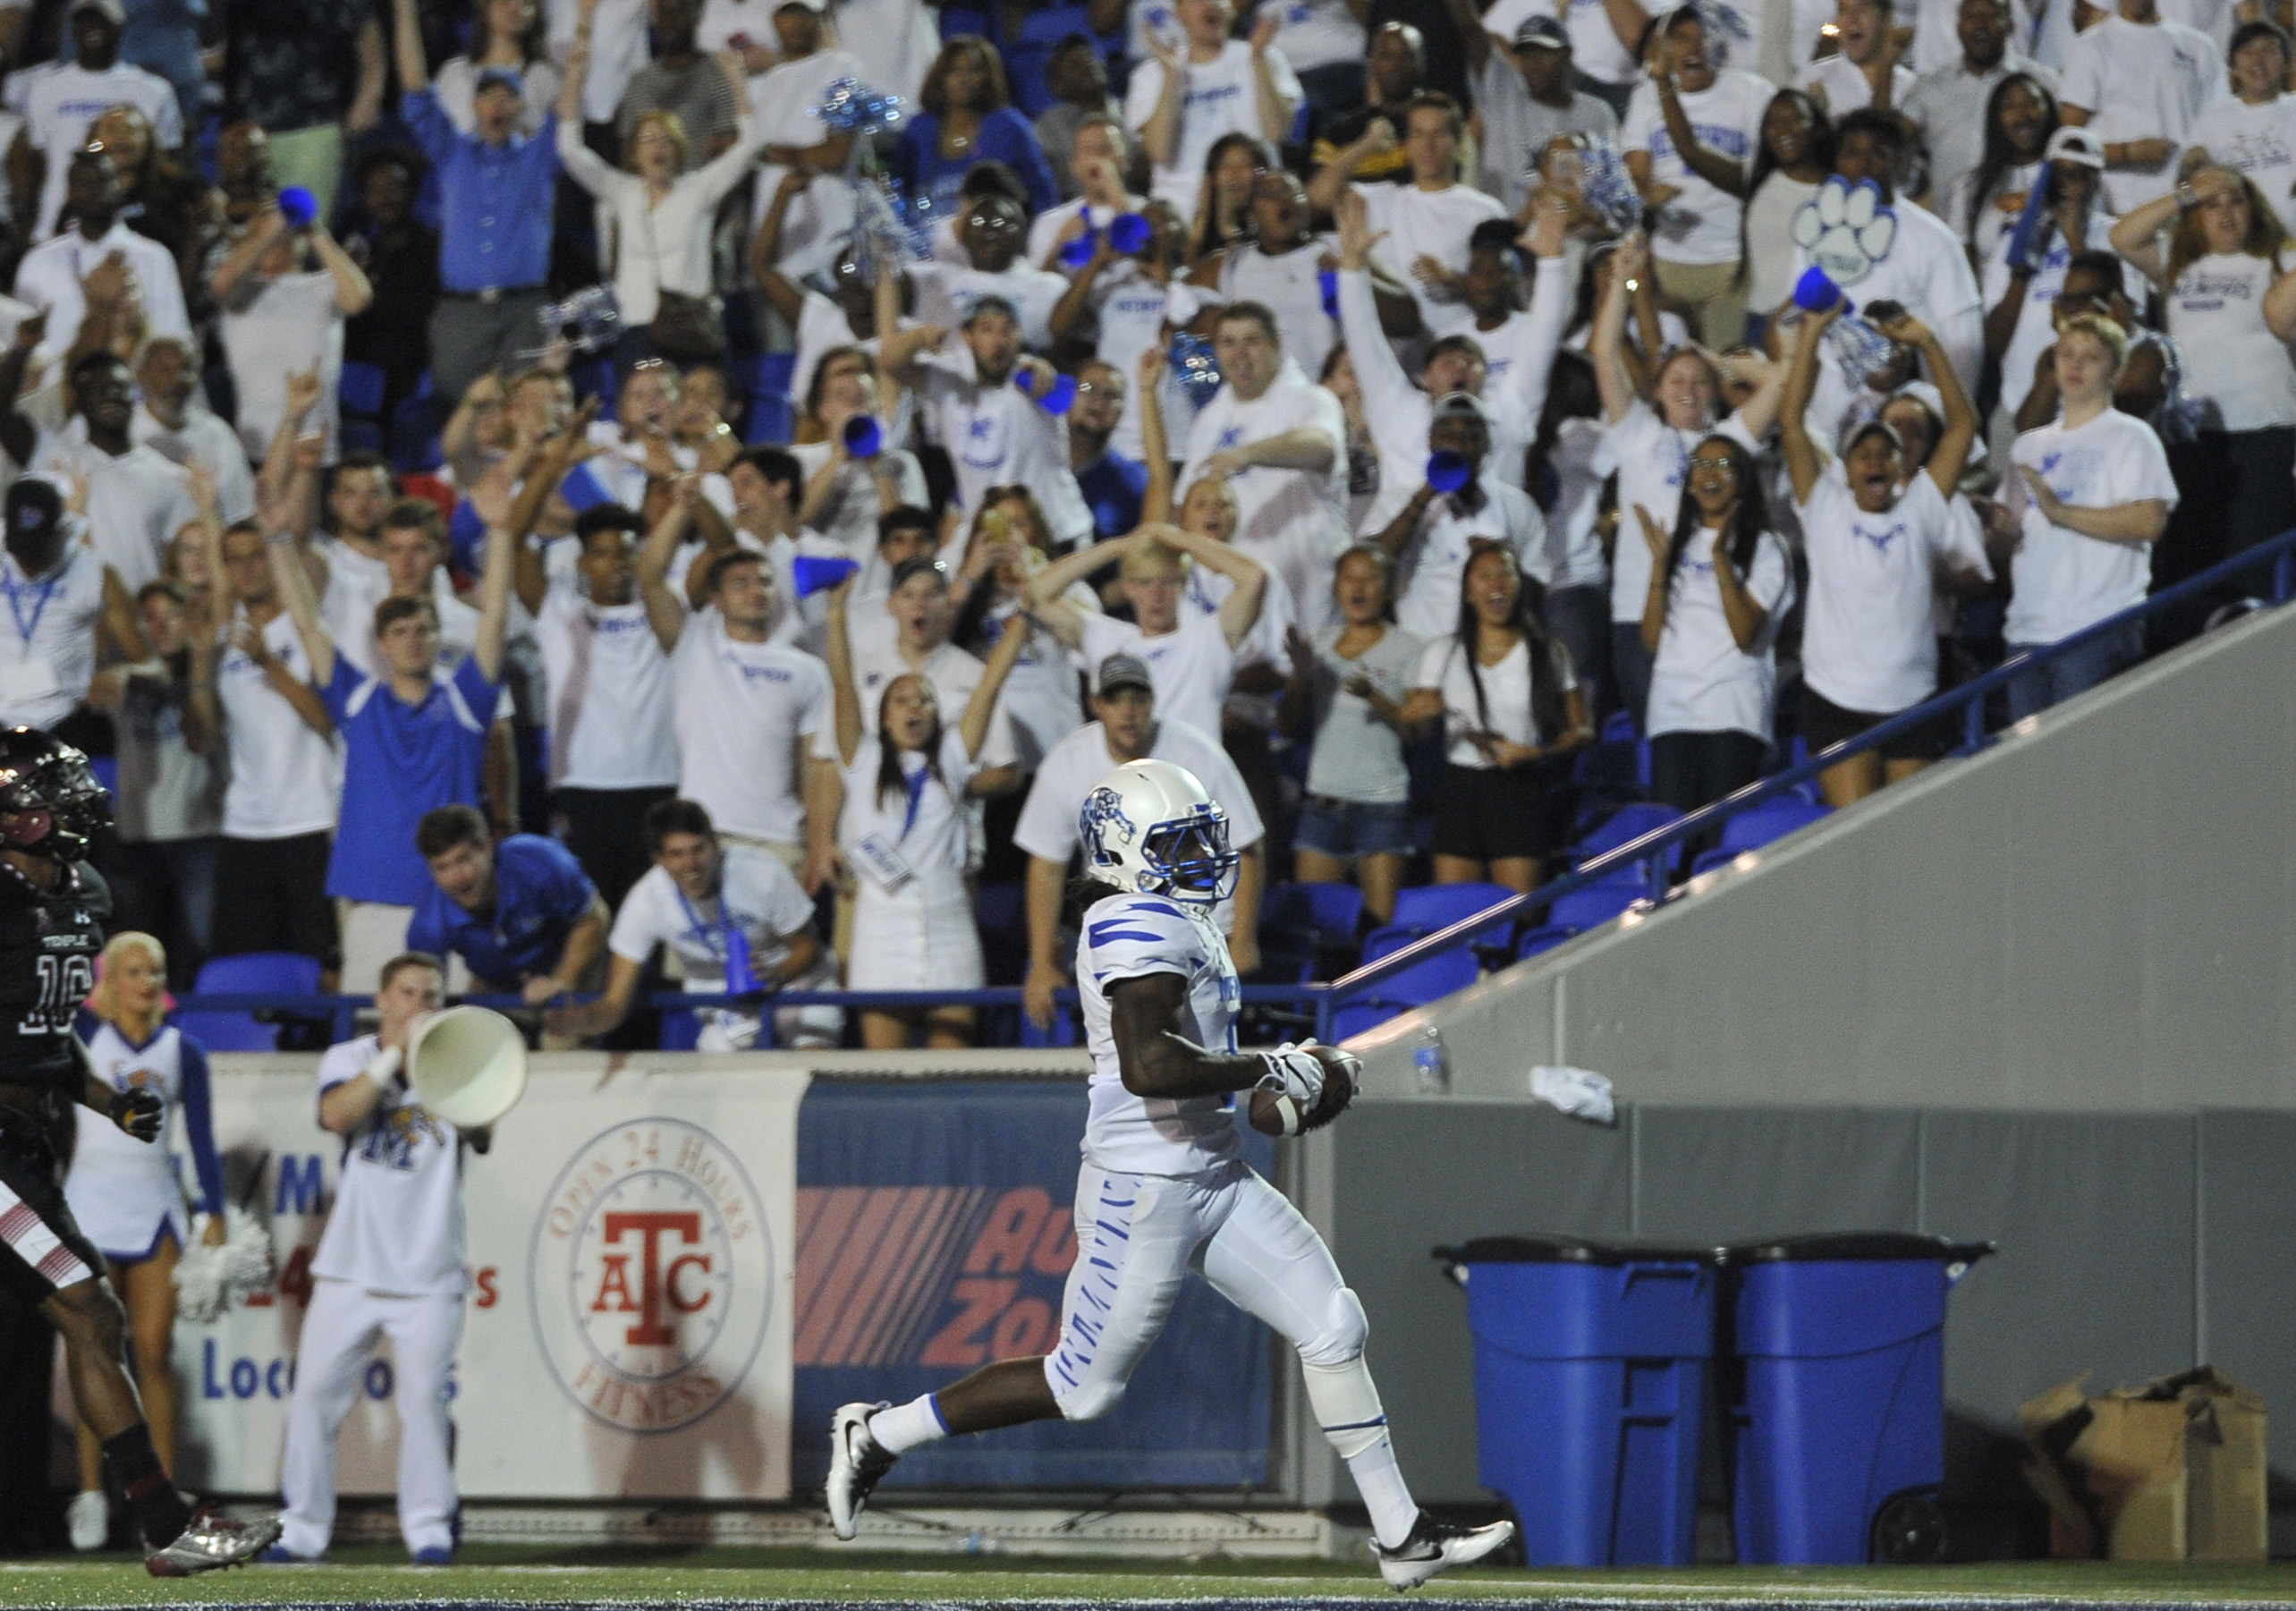 Memphis Tigers RB Darrell Henderson scores a touchdown against the Temple Owls, Oct. 6, 2016.